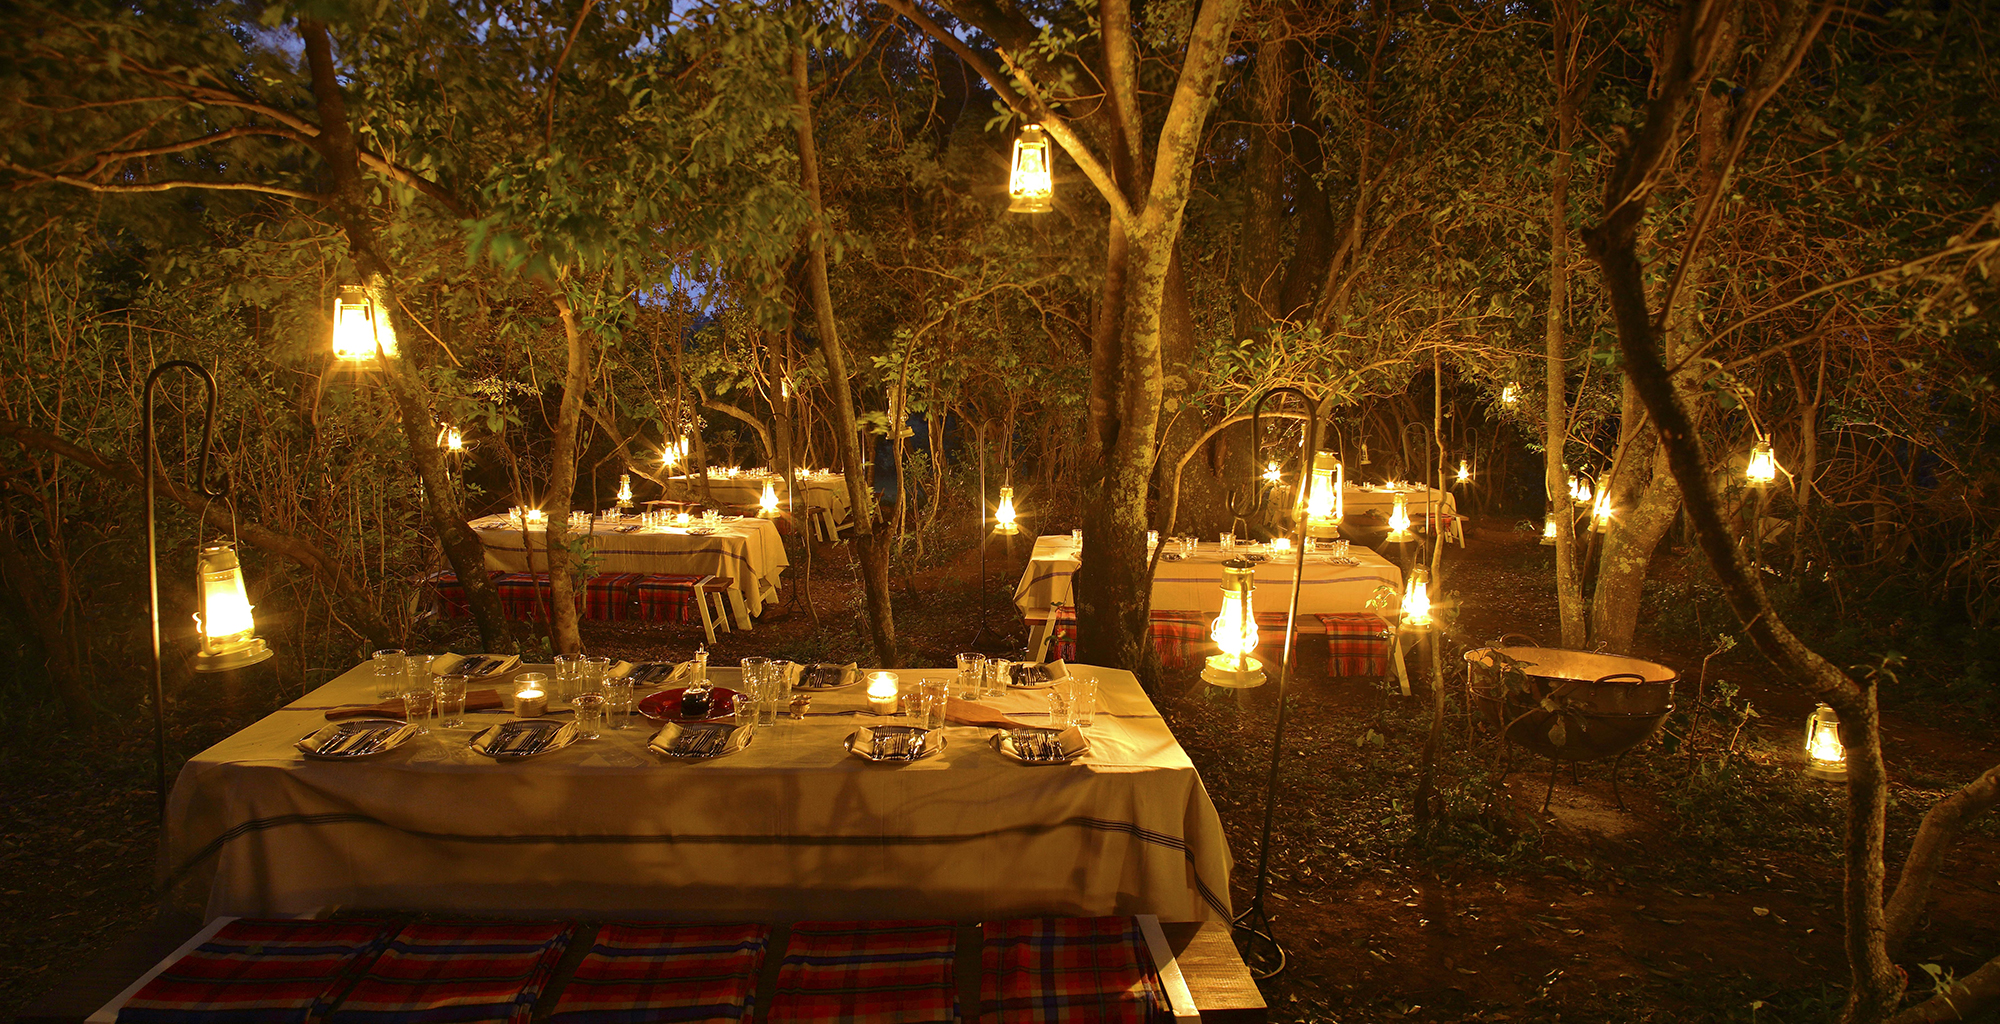 Kenya-Angama-Mara-Wooded-Dining